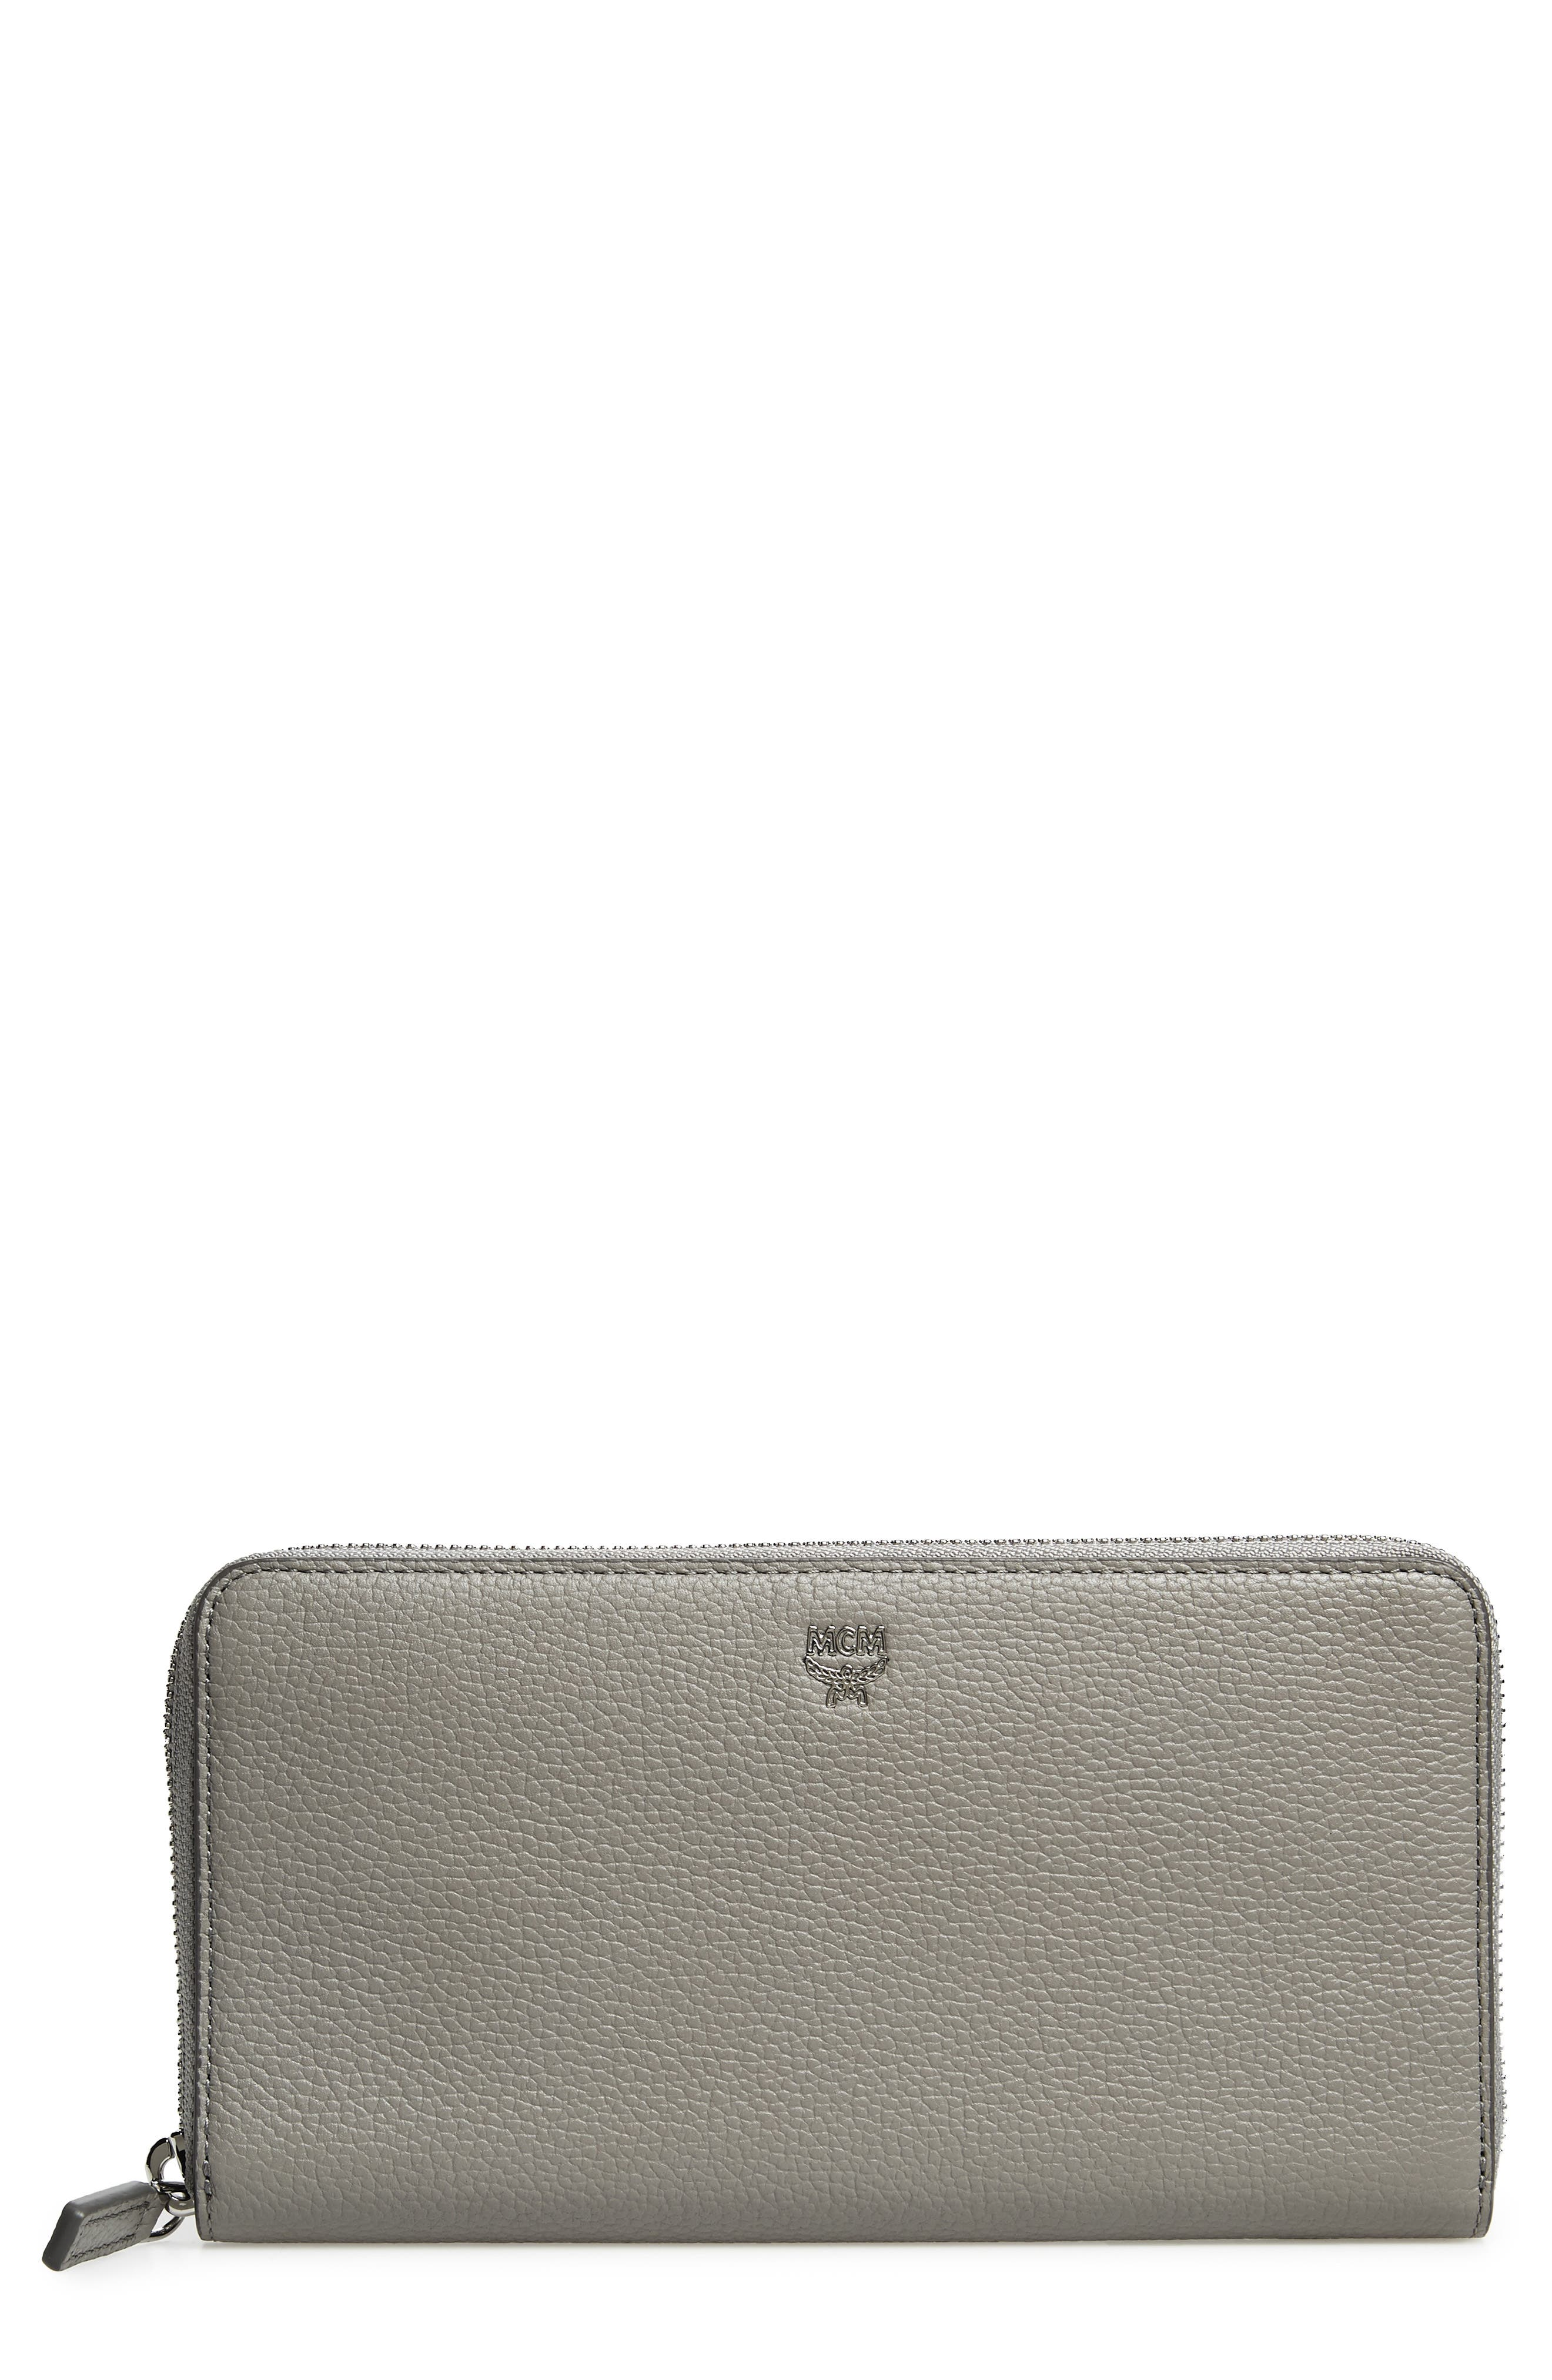 Alternate Image 1 Selected - MCM Large Milla Zip-Around Leather Wallet